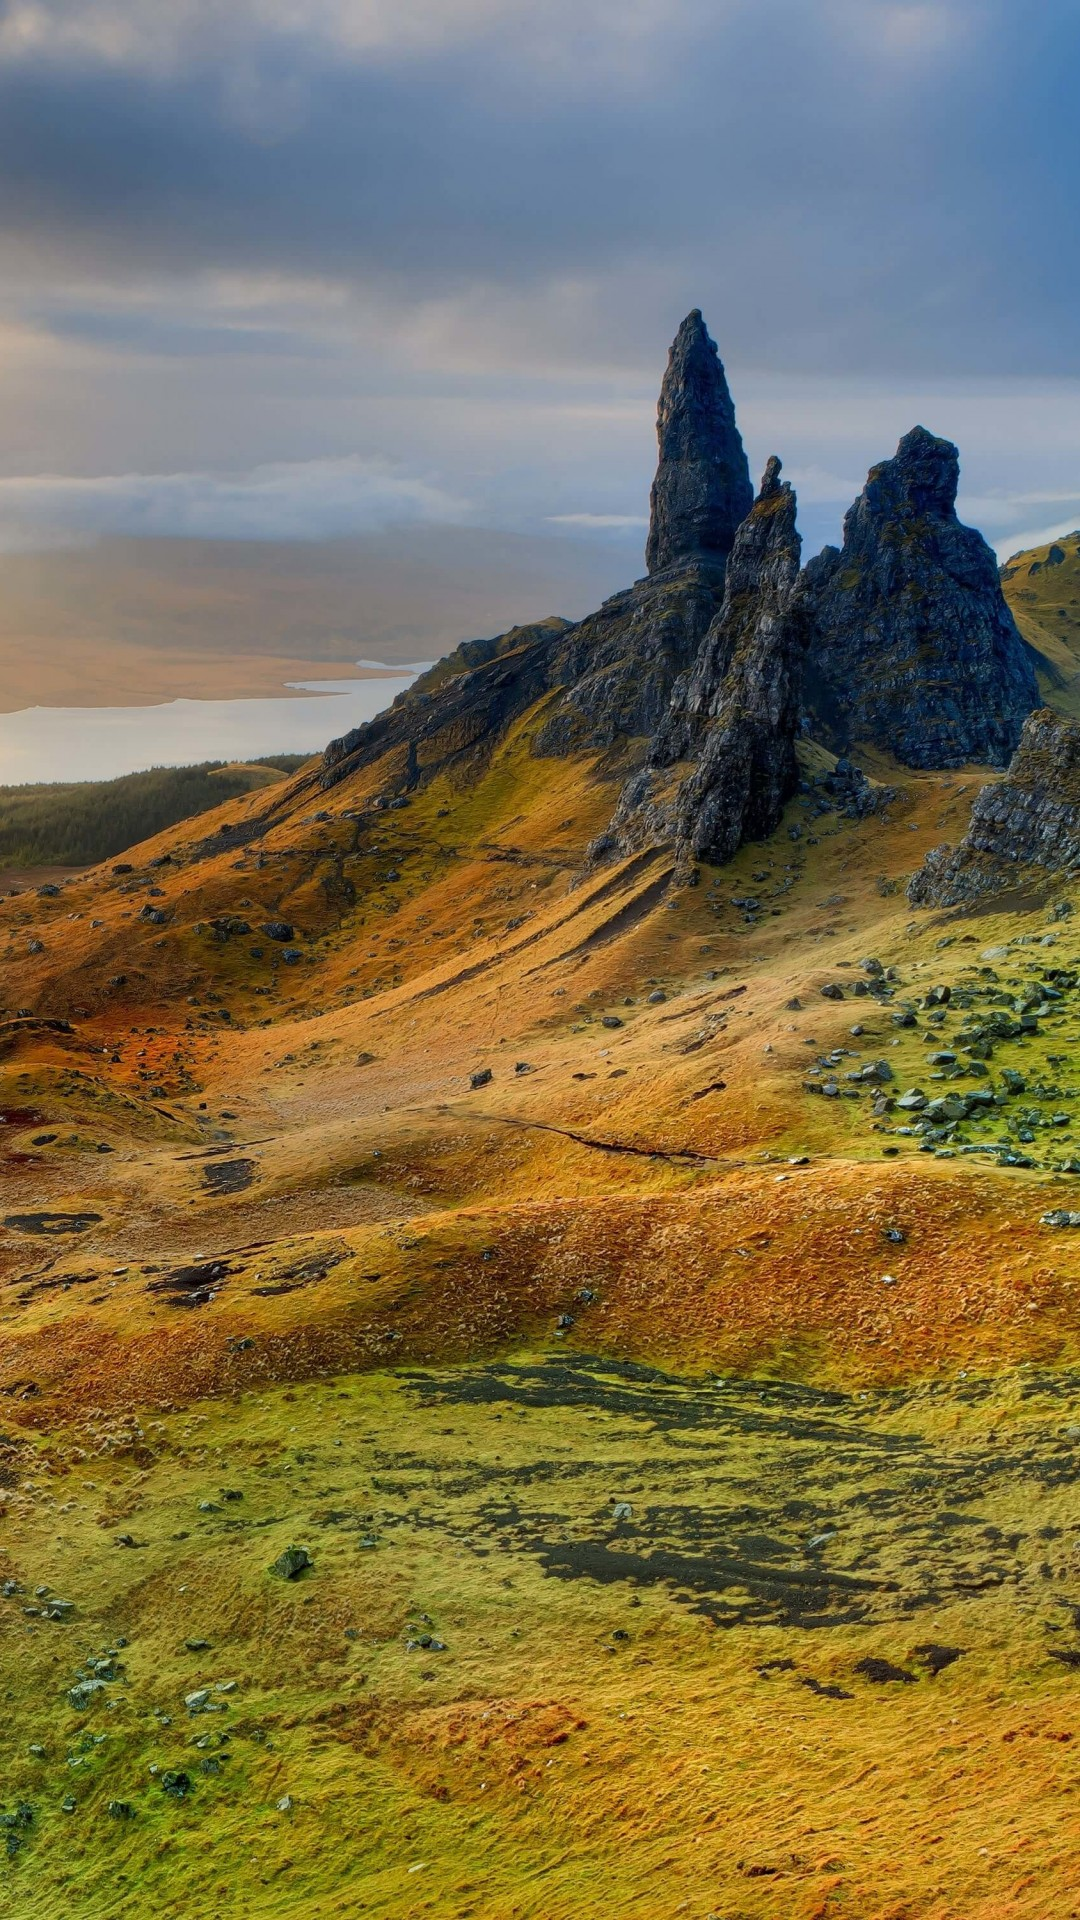 The Old Man of Storr, Isle of Skye, Scotland Wallpaper for SAMSUNG Galaxy S4